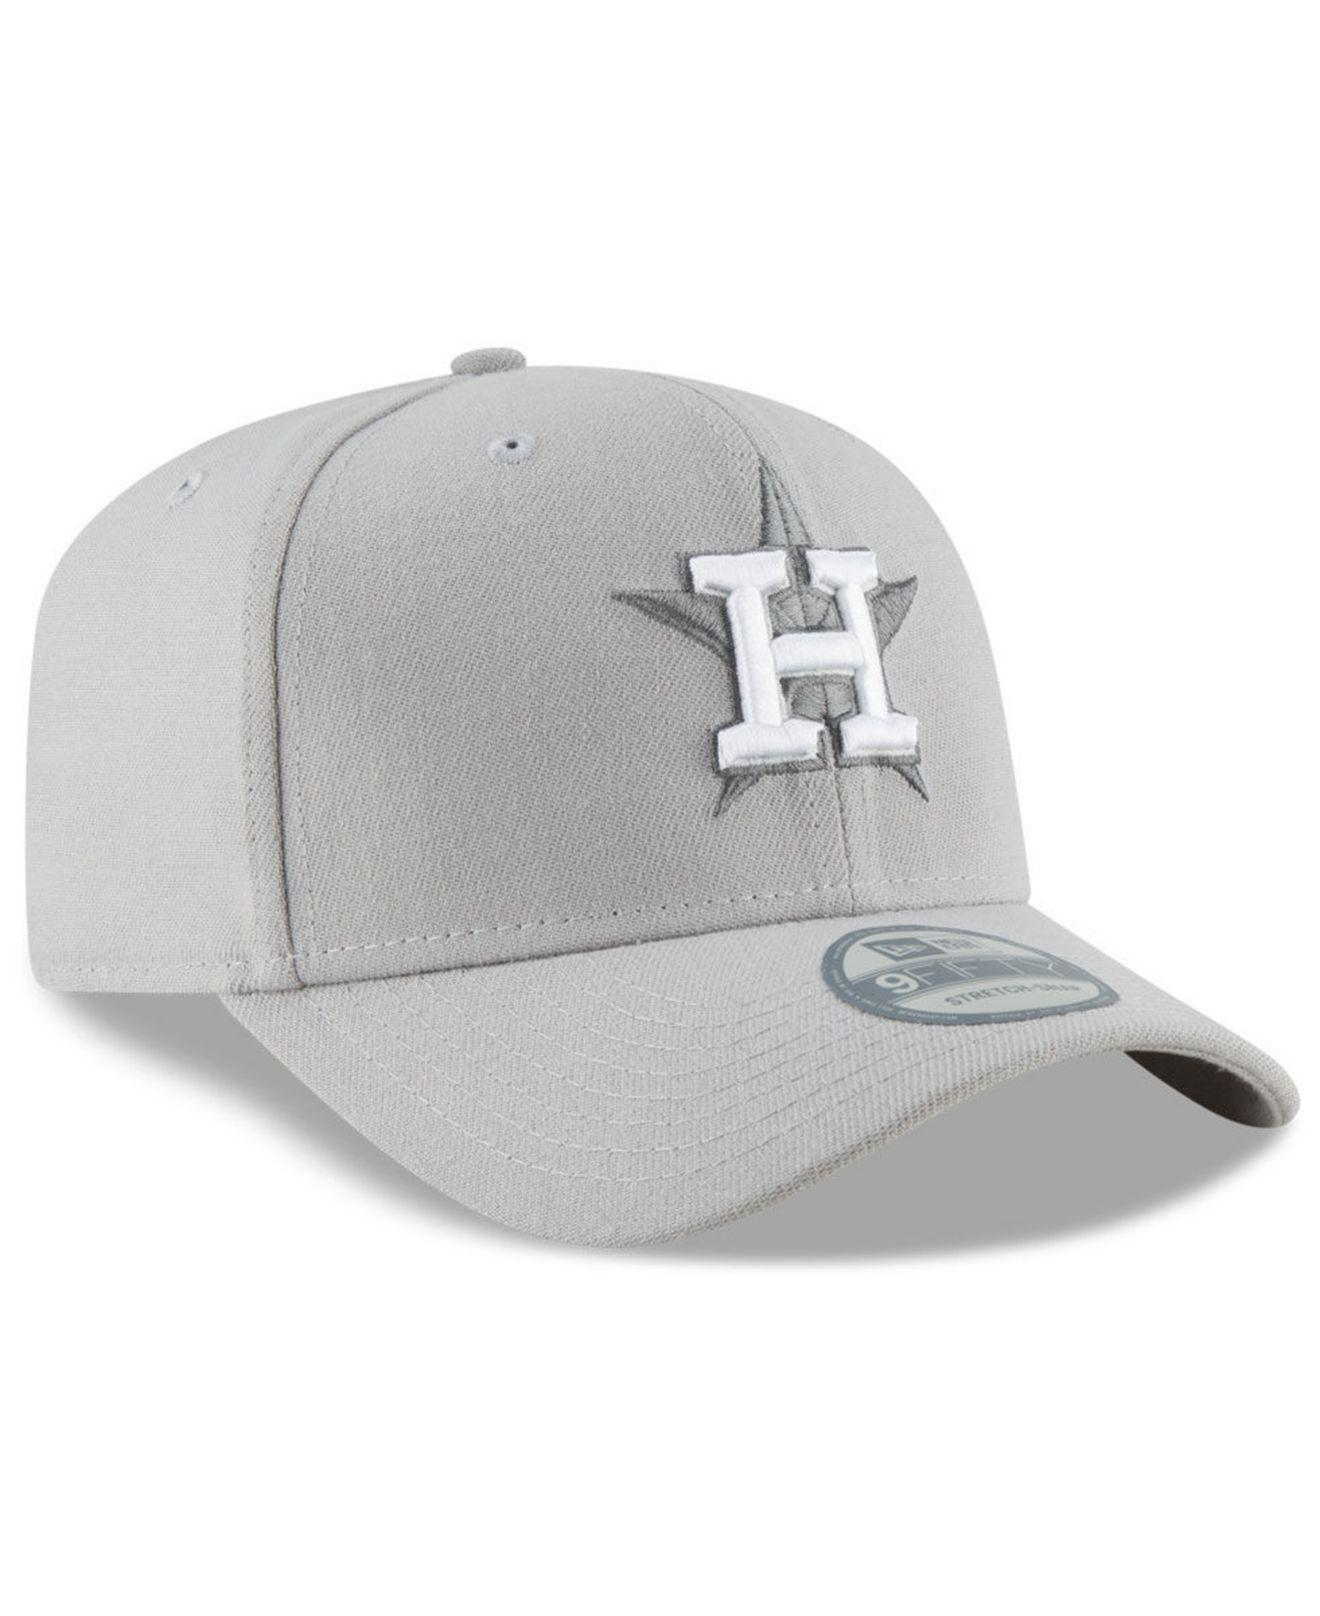 41017e5eabd ... get houston astros color prism pack stretch 9fifty snapback cap for men  lyst. view fullscreen